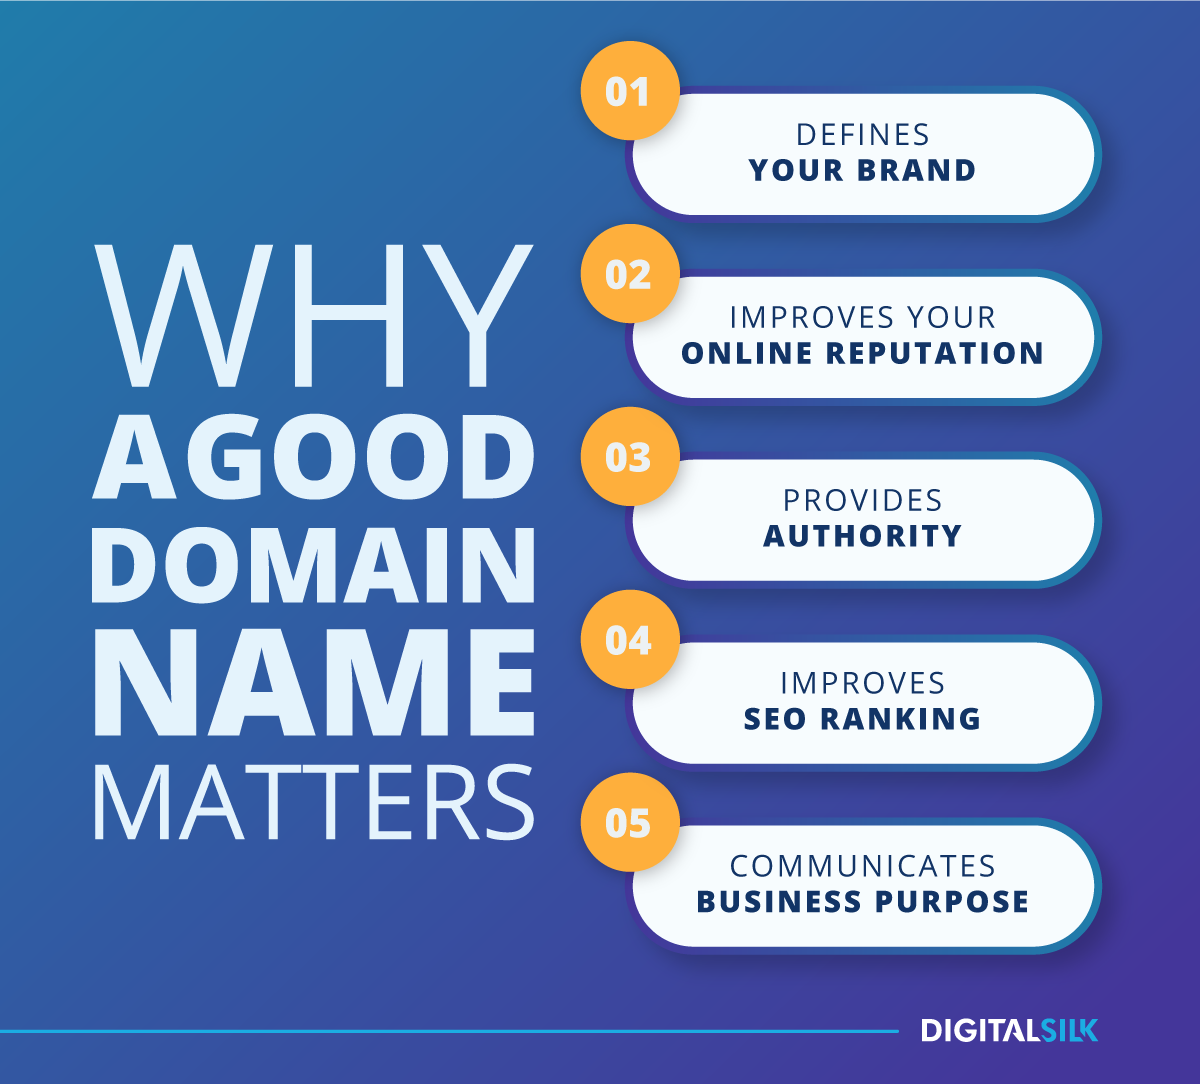 Why good domain name matters